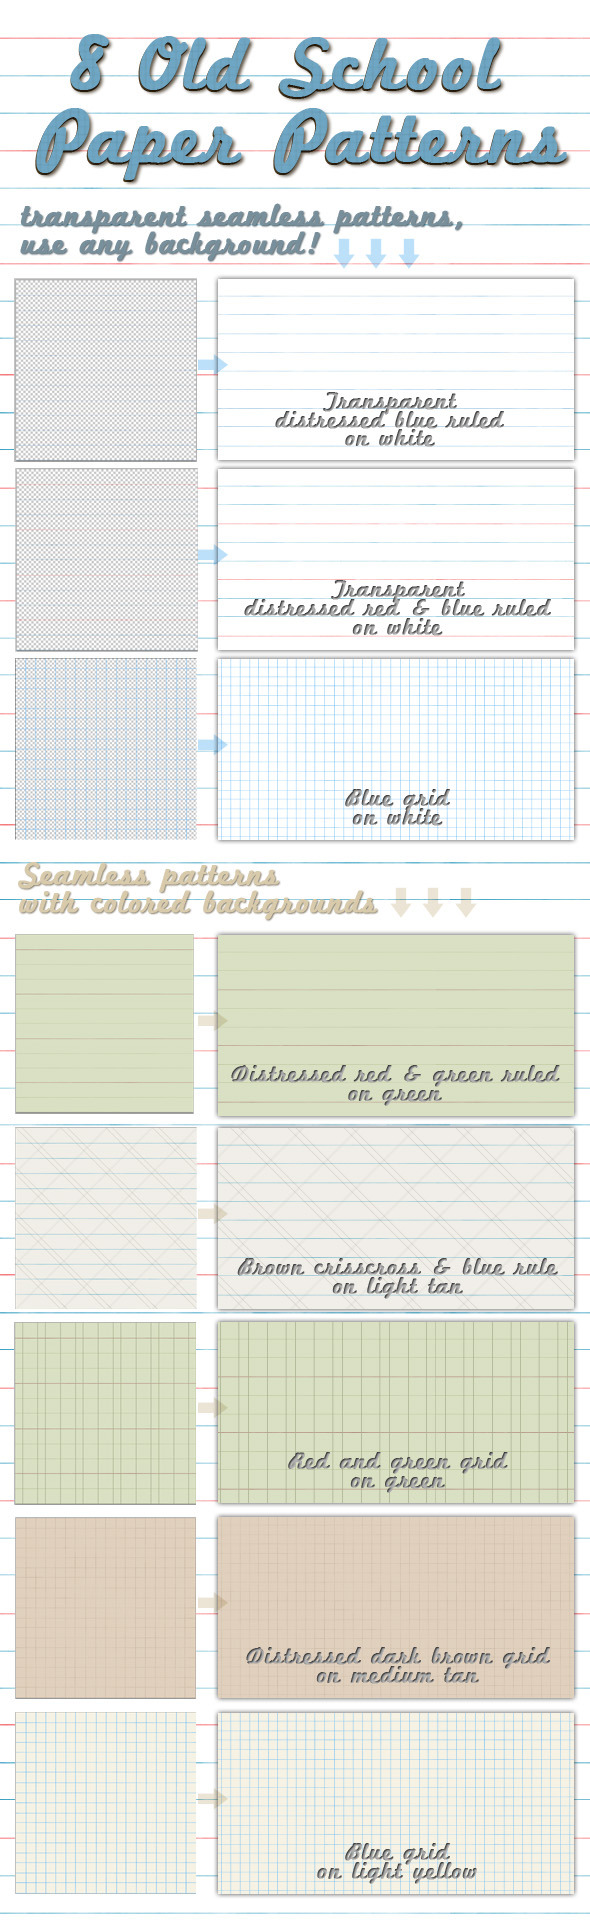 Old School Paper Patterns - Photoshop Add-ons